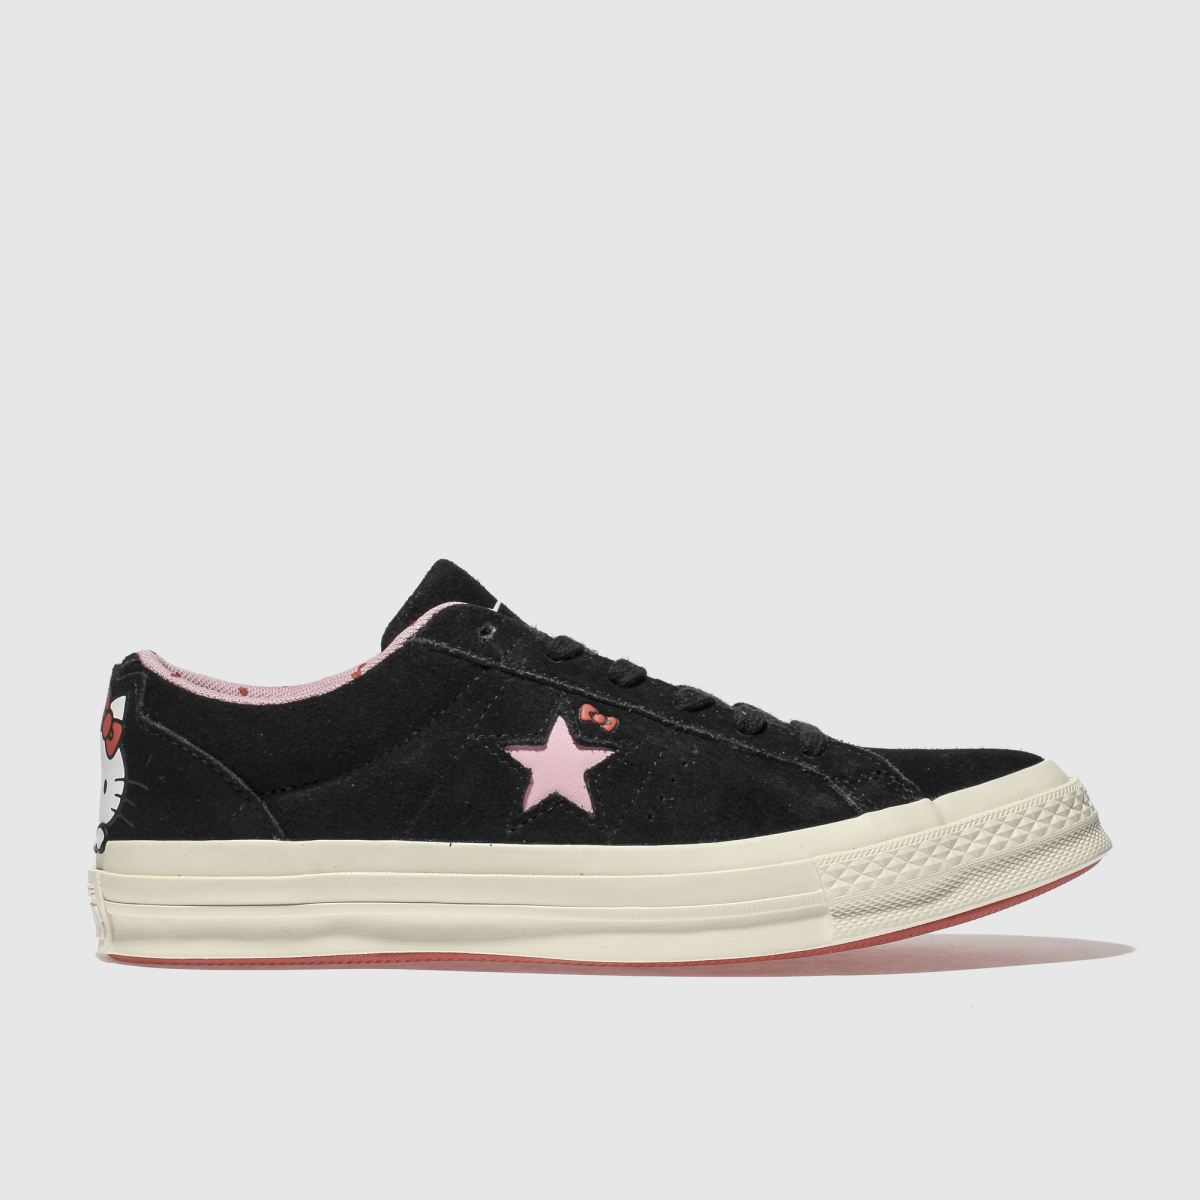 Converse Black One Star Hello Kitty Suede Trainers